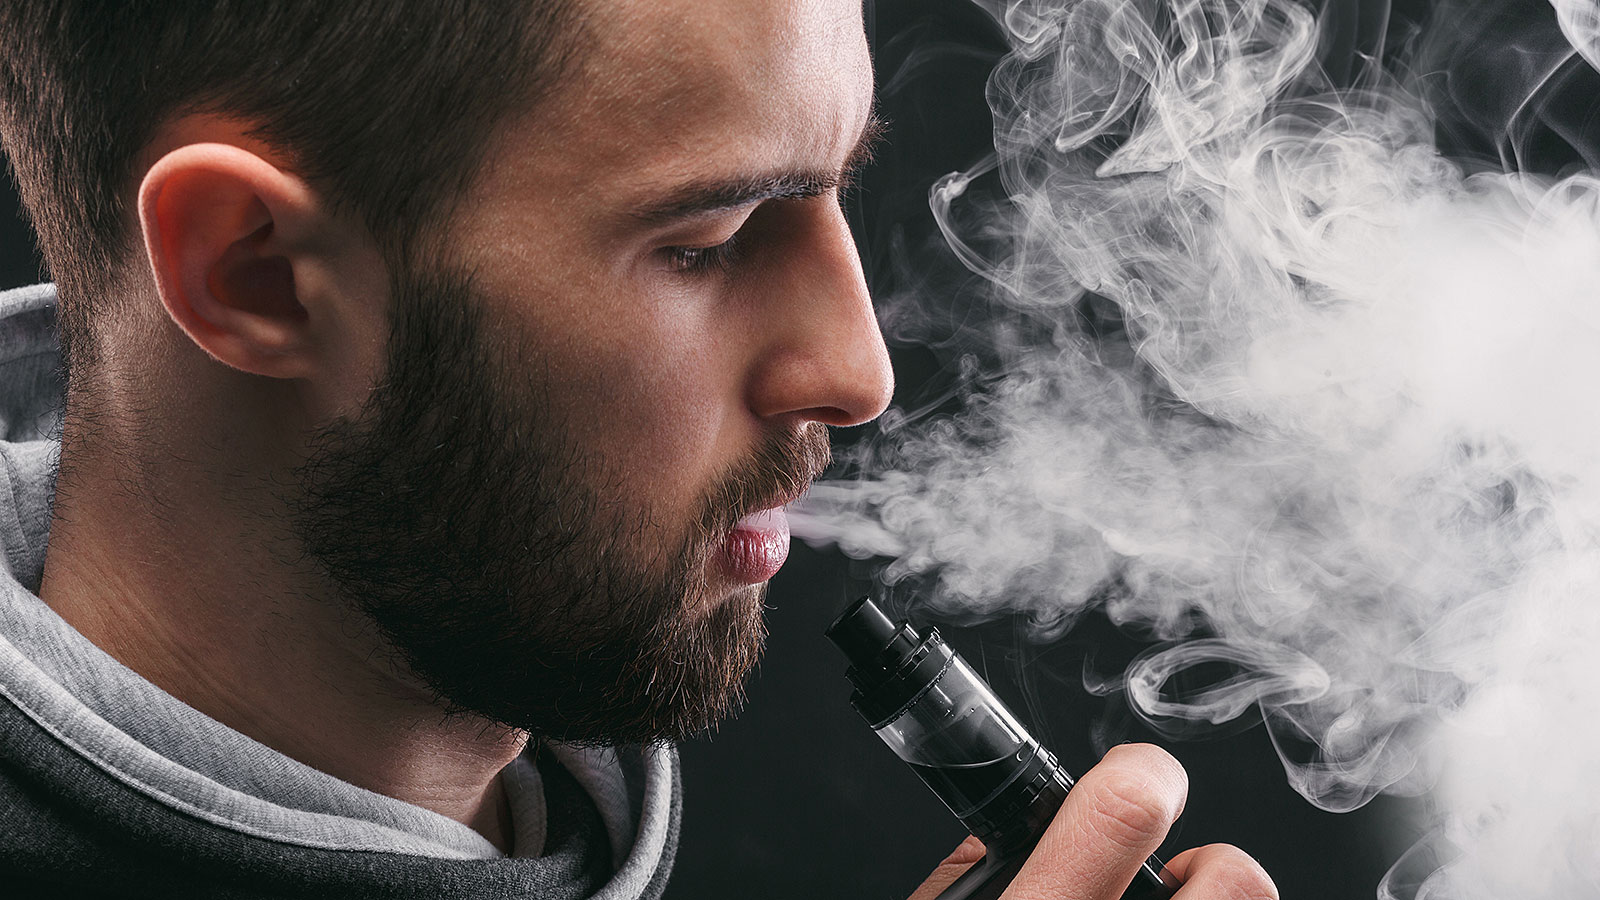 Another super scary study explains why you shouldn't vape